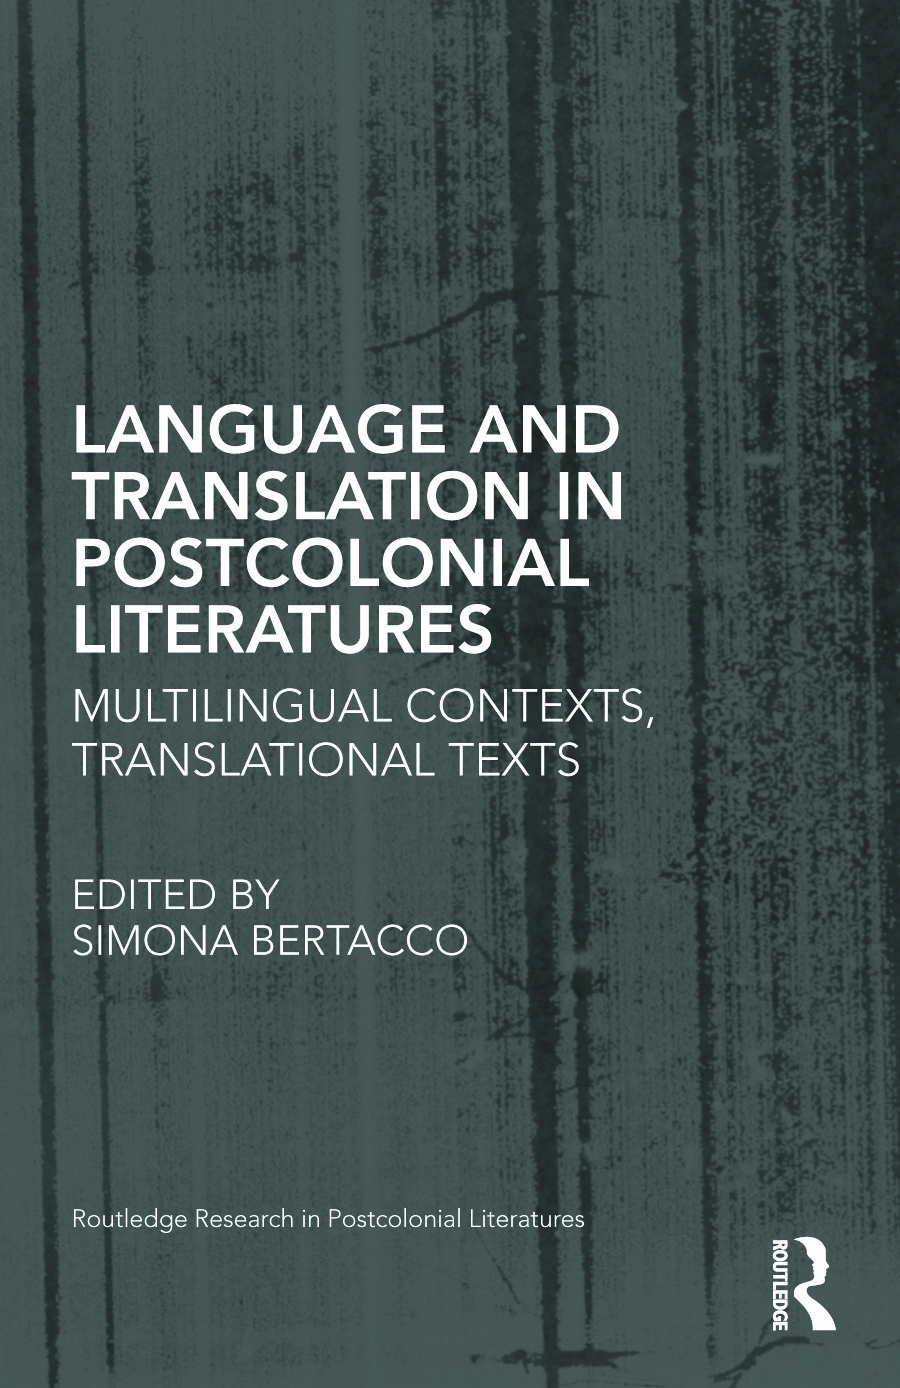 Language and Translation in Postcolonial Literatures: Multilingual Contexts, Translational Texts book cover